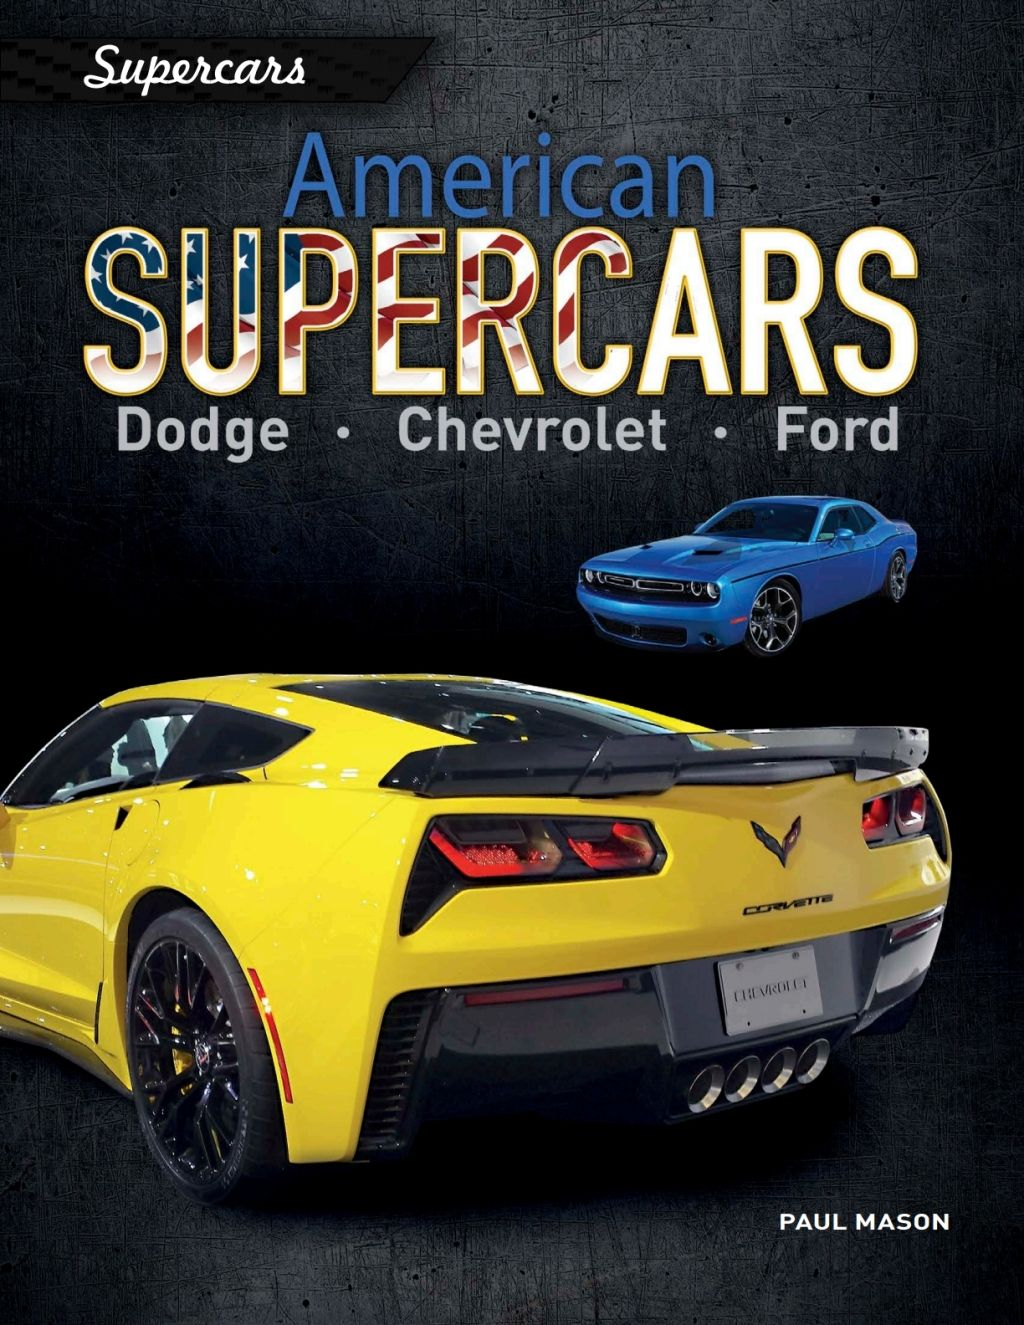 American Supercars Dodge Chevrolet Ford Ebook Super Cars Luxury Car Brands Chevrolet